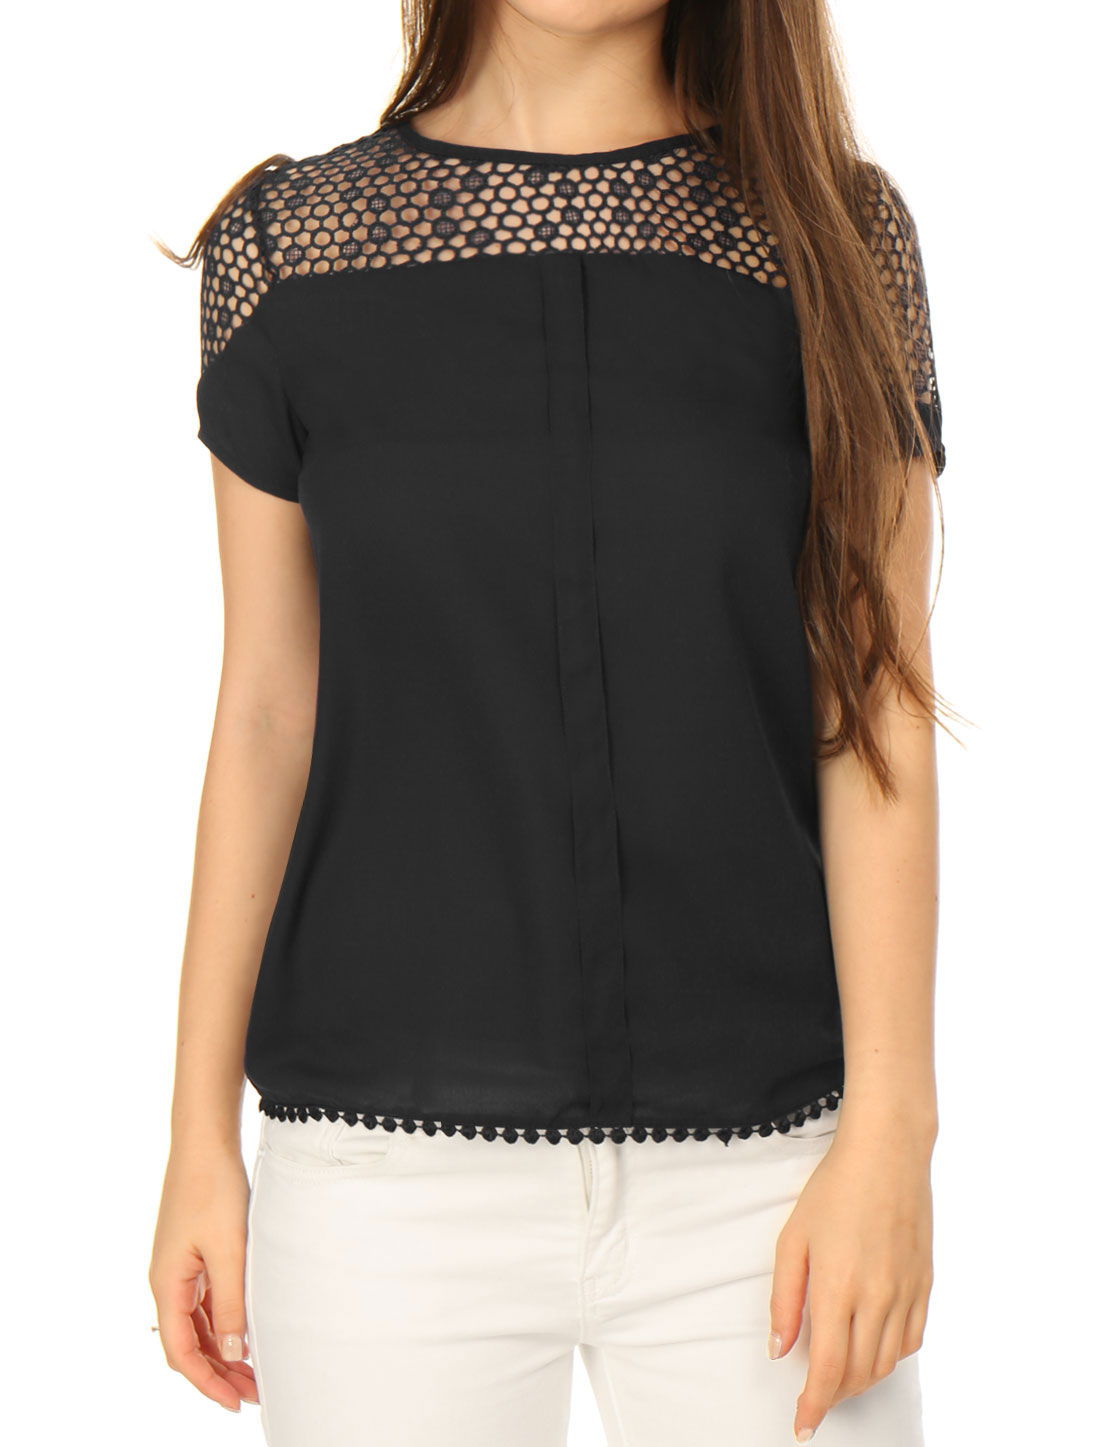 Women Short Sleeves Semi Sheer Placket Front Guipure Lace Top Black S